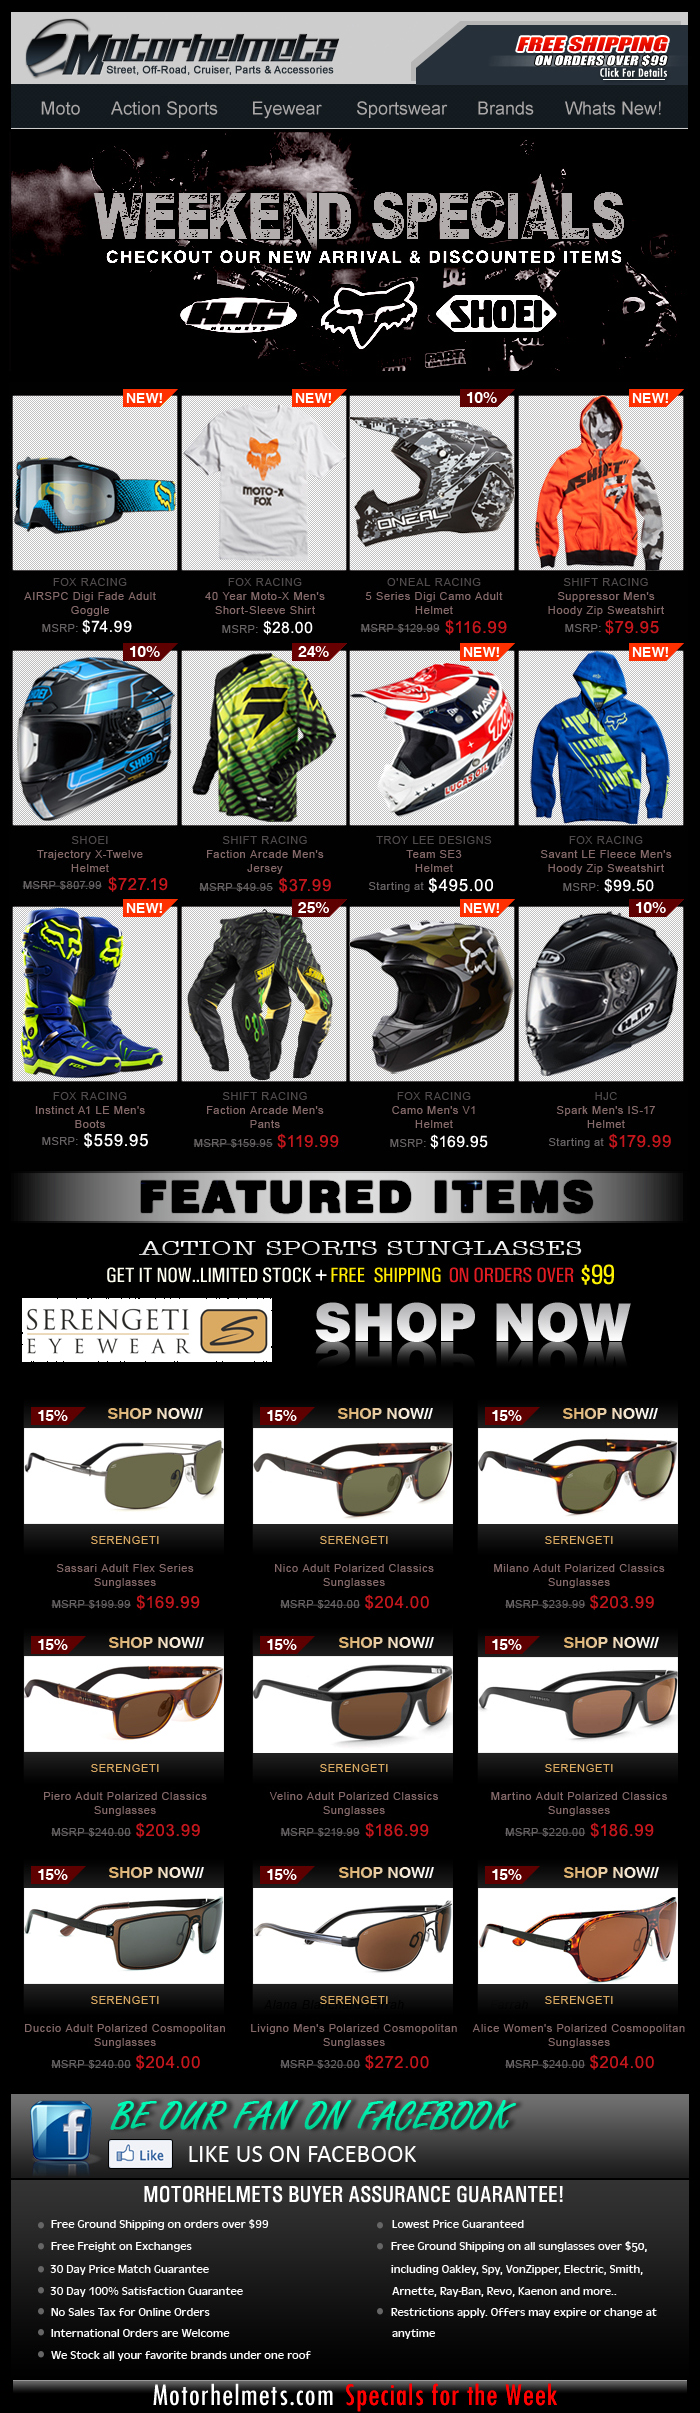 Weekend Specials, Featuring New and Discounted FOX, Shift and More Premium Items!